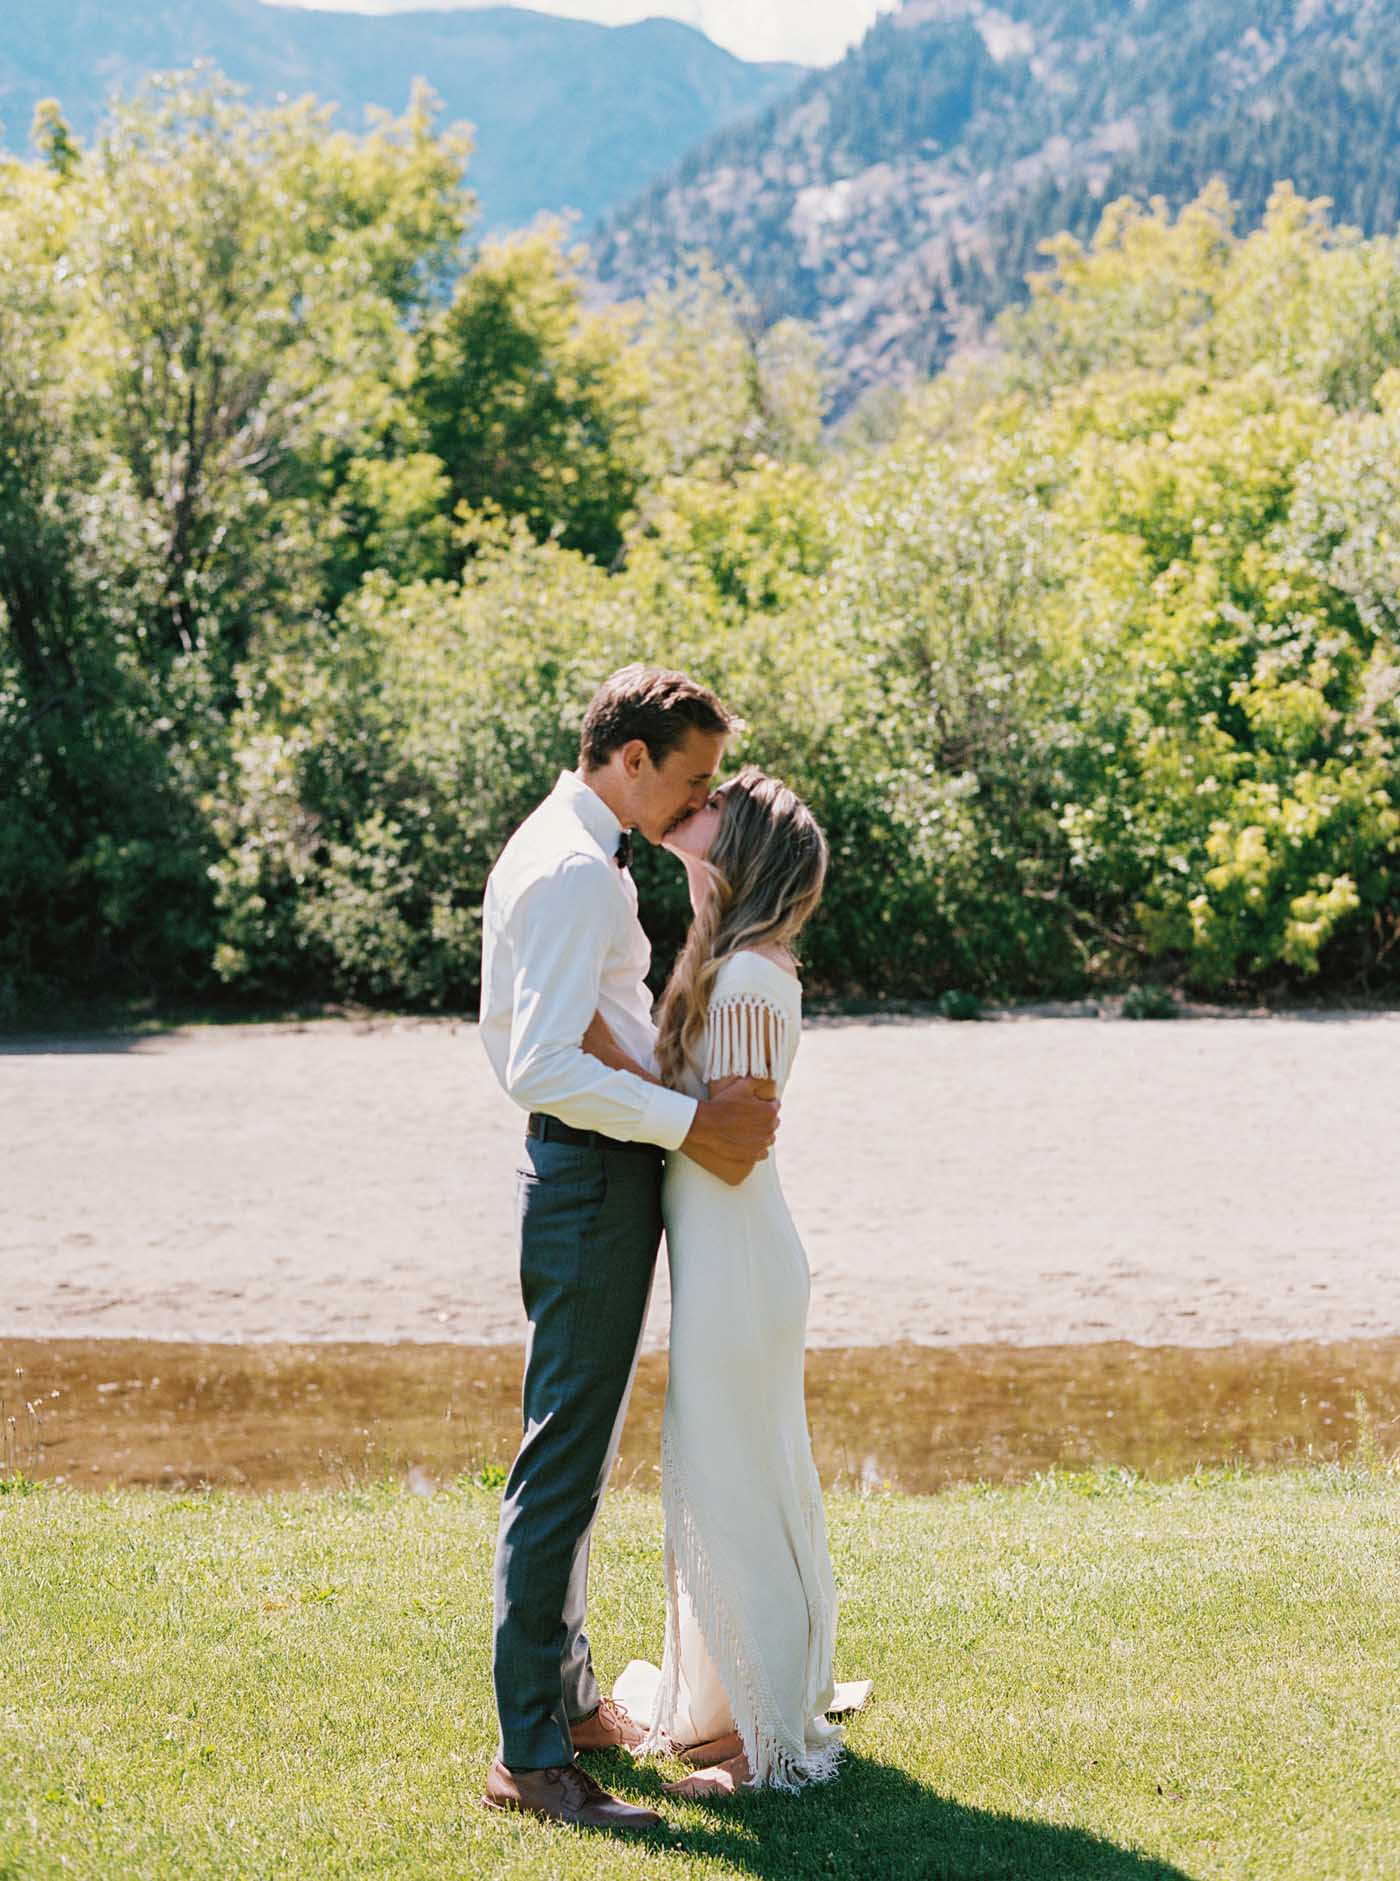 Bride and groom portraits at a relaxed outdoor wedding in Leavenworth